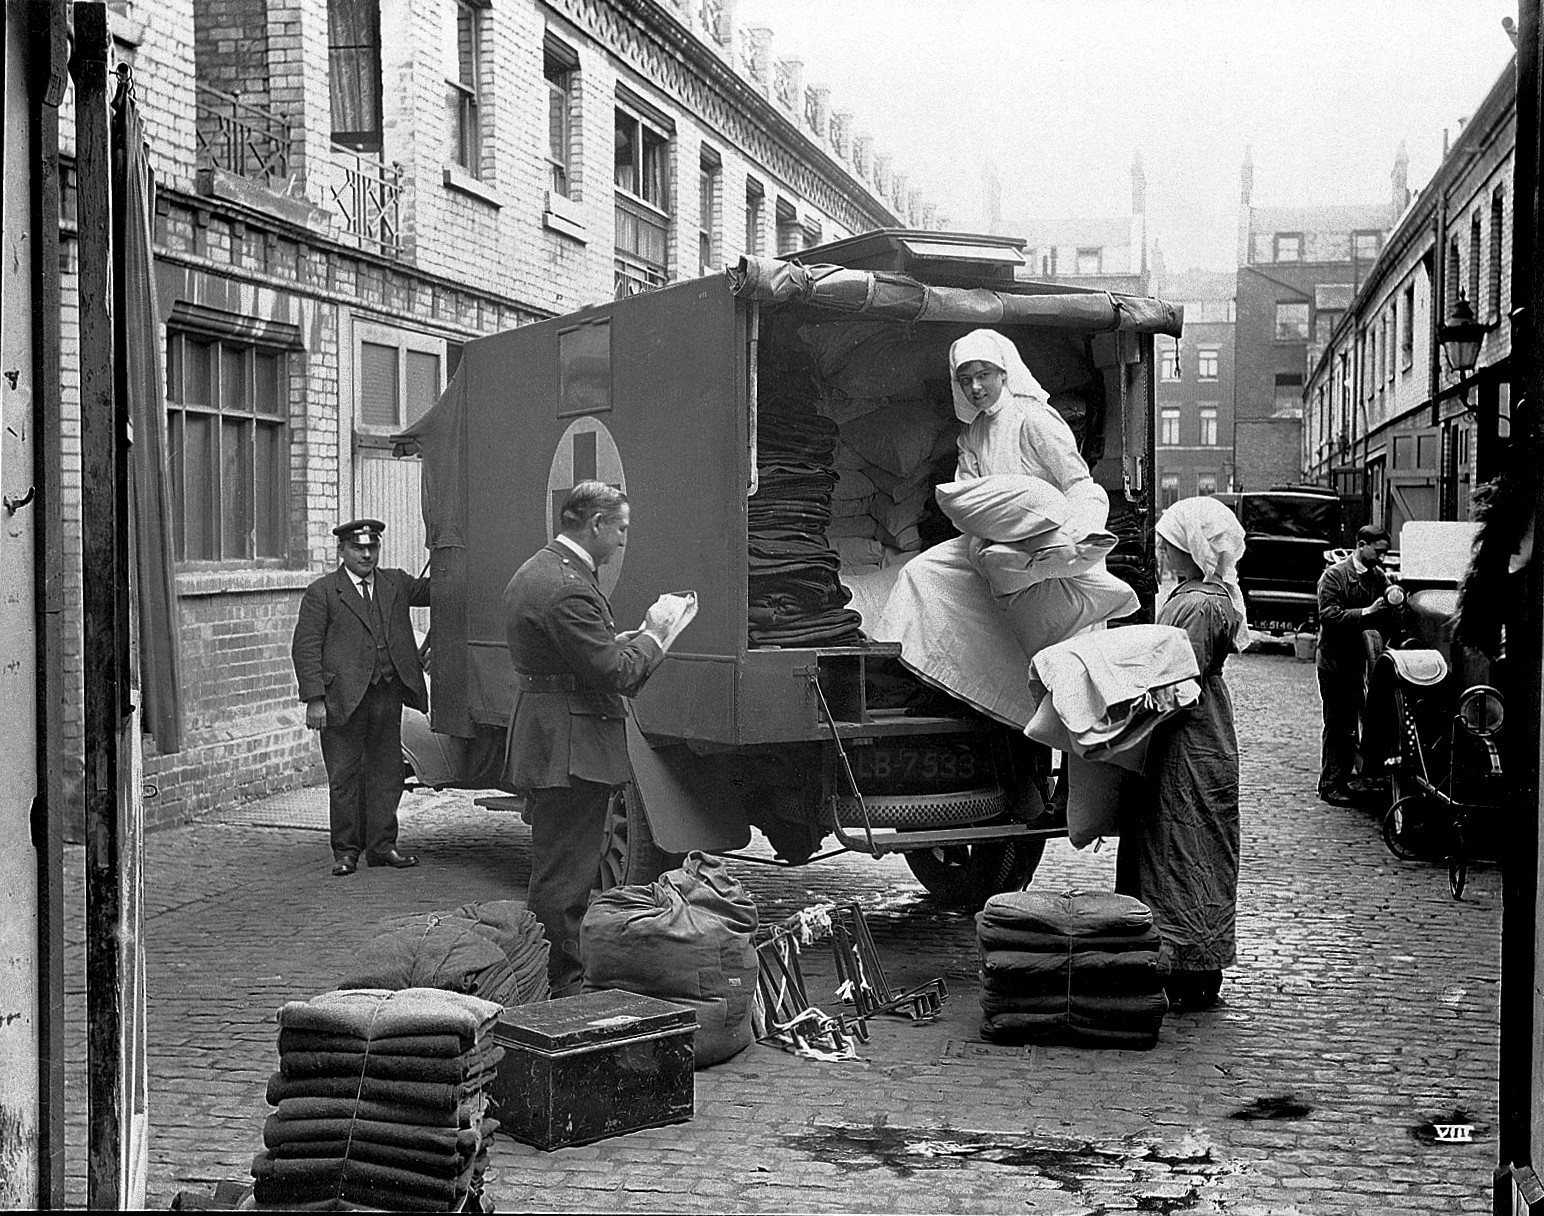 Loading up blankets into an ambulance in Gower Mews, London, in September 1918.